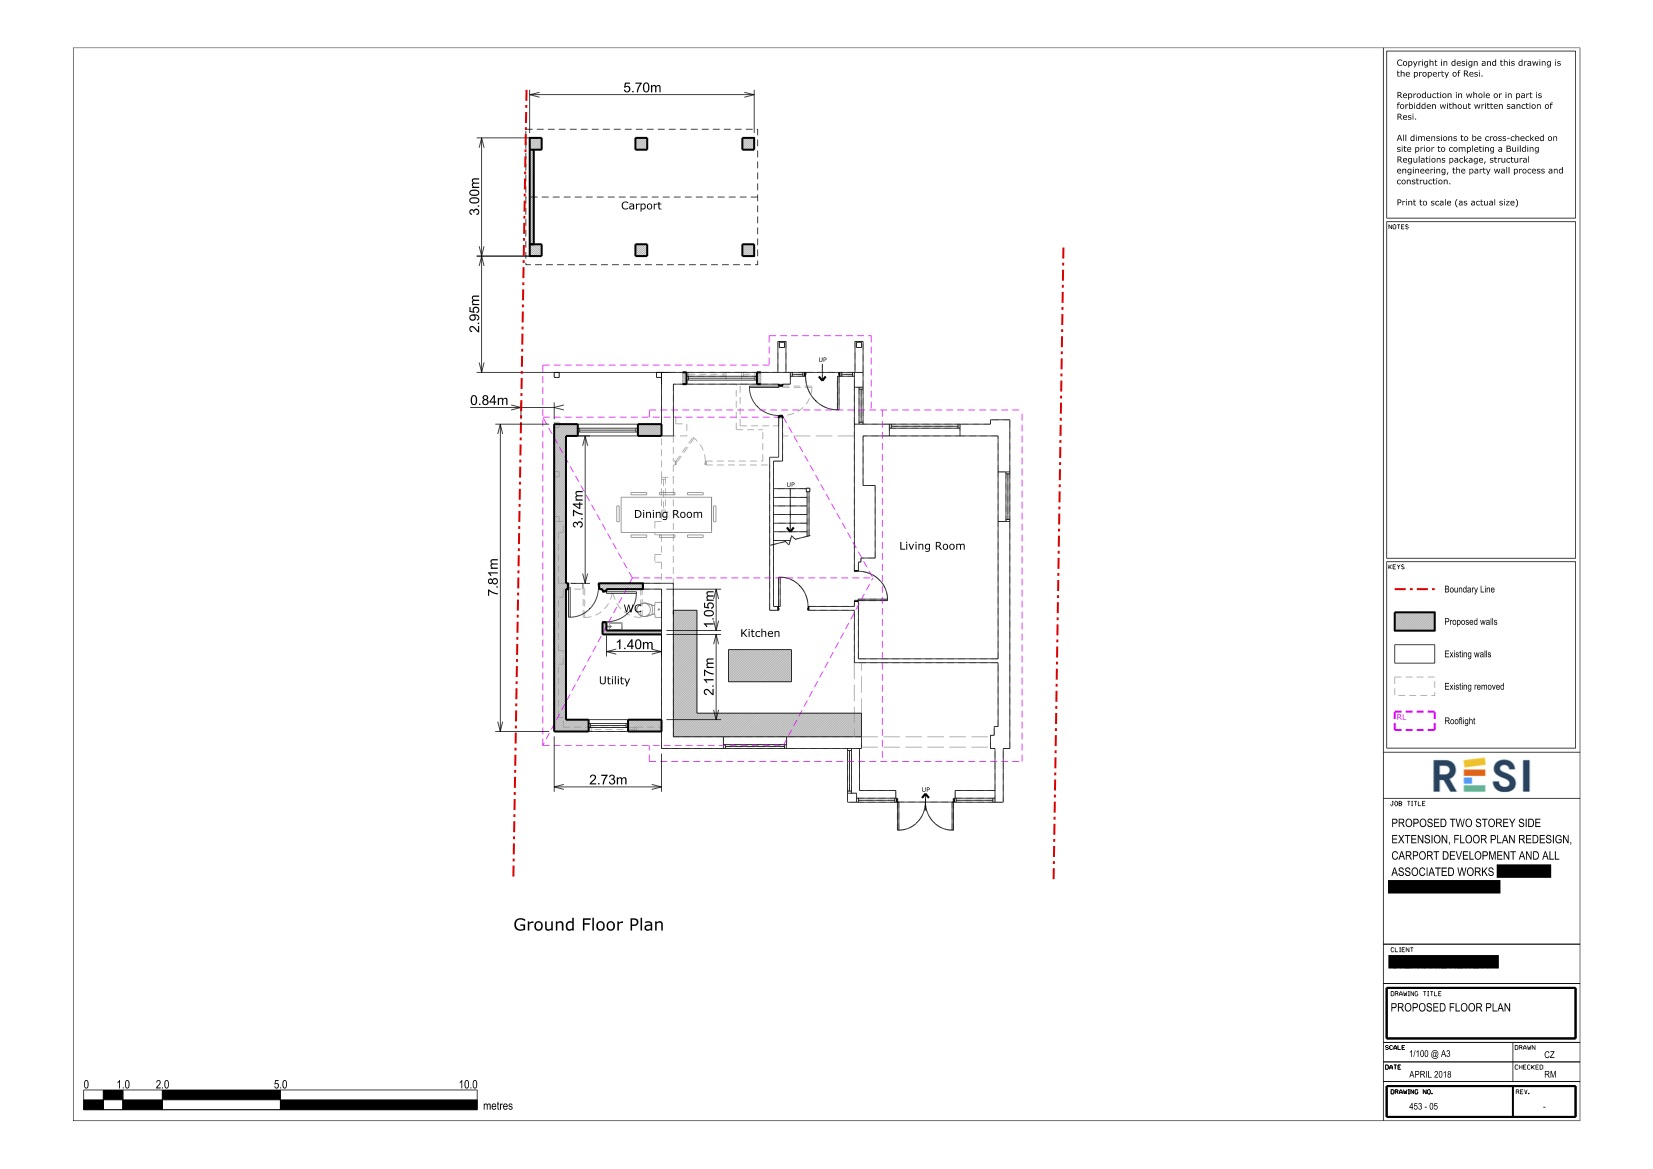 Architectural drawing package   ground floor plans